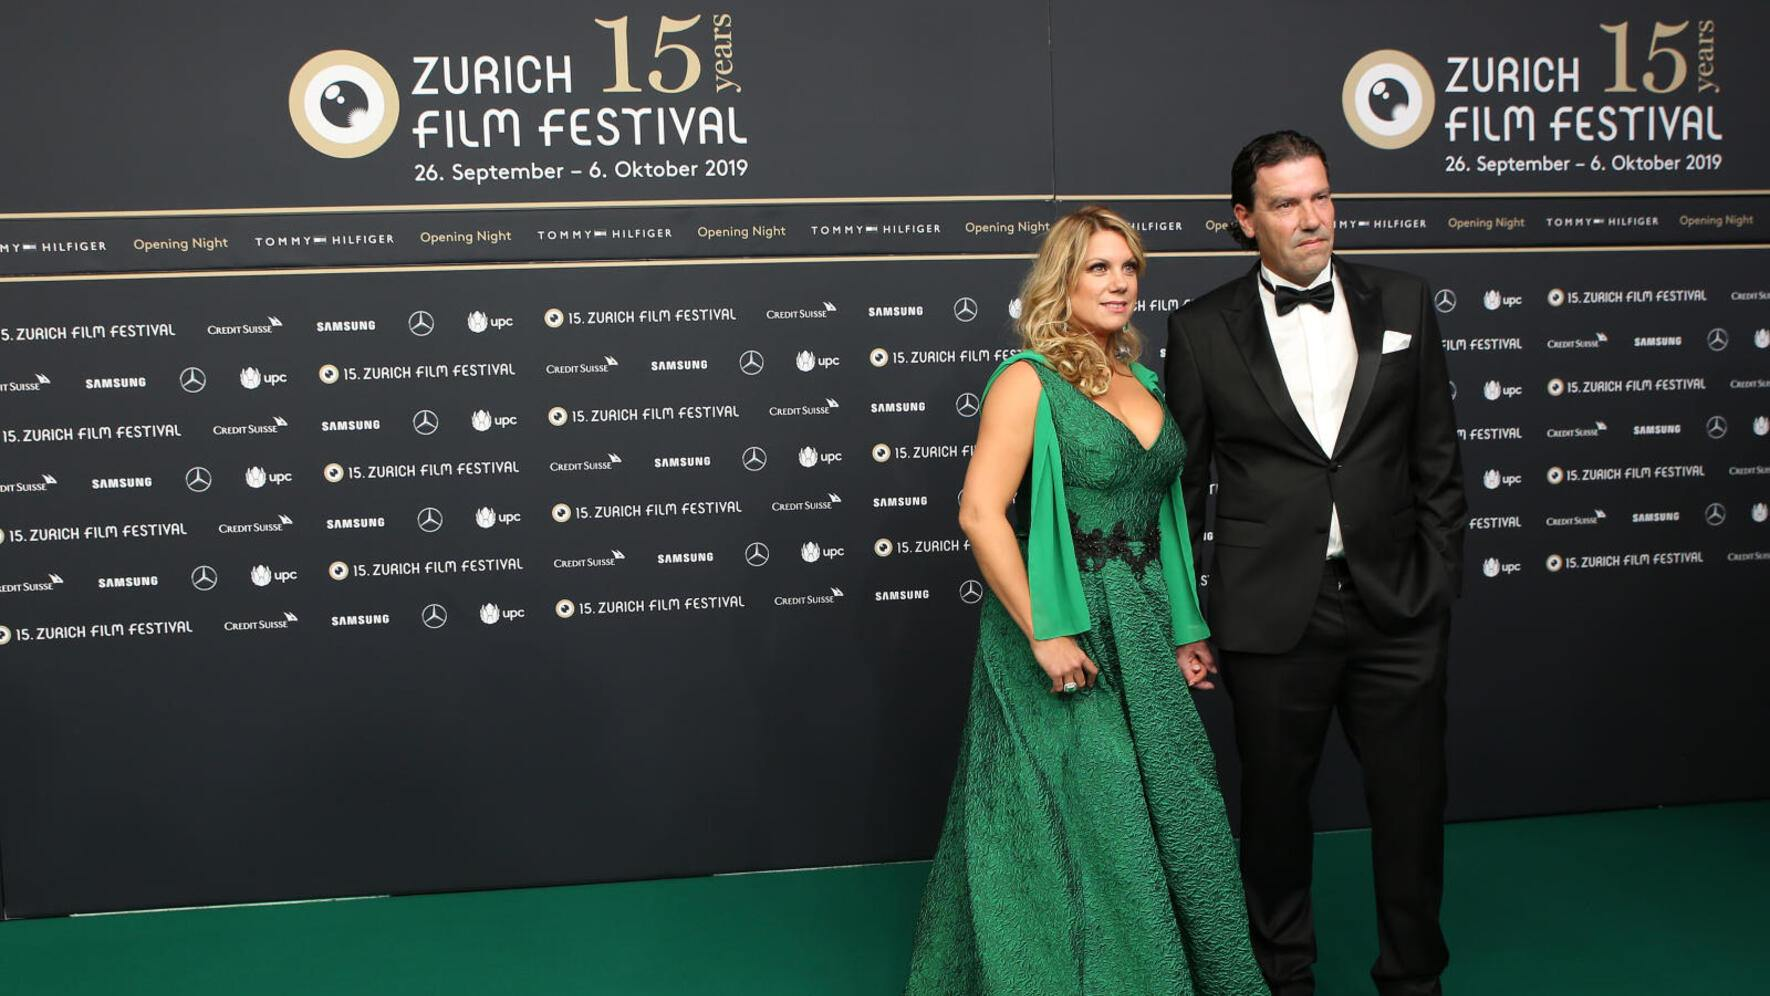 """ZURICH, SWITZERLAND - SEPTEMBER 26: Isabella Schmid and guest attend the opening ceremony and """"Bruno Manser - Die Stimme des Regenwaldes"""" premiere during the 15th Zurich Film Festival at Kino Corso on September 26, 2019 in Zurich, Switzerland. The Zurich Film Festival 2019 takes place from September 26 until October 6. (Photo by Ferda Demir/Getty Images for ZFF)"""